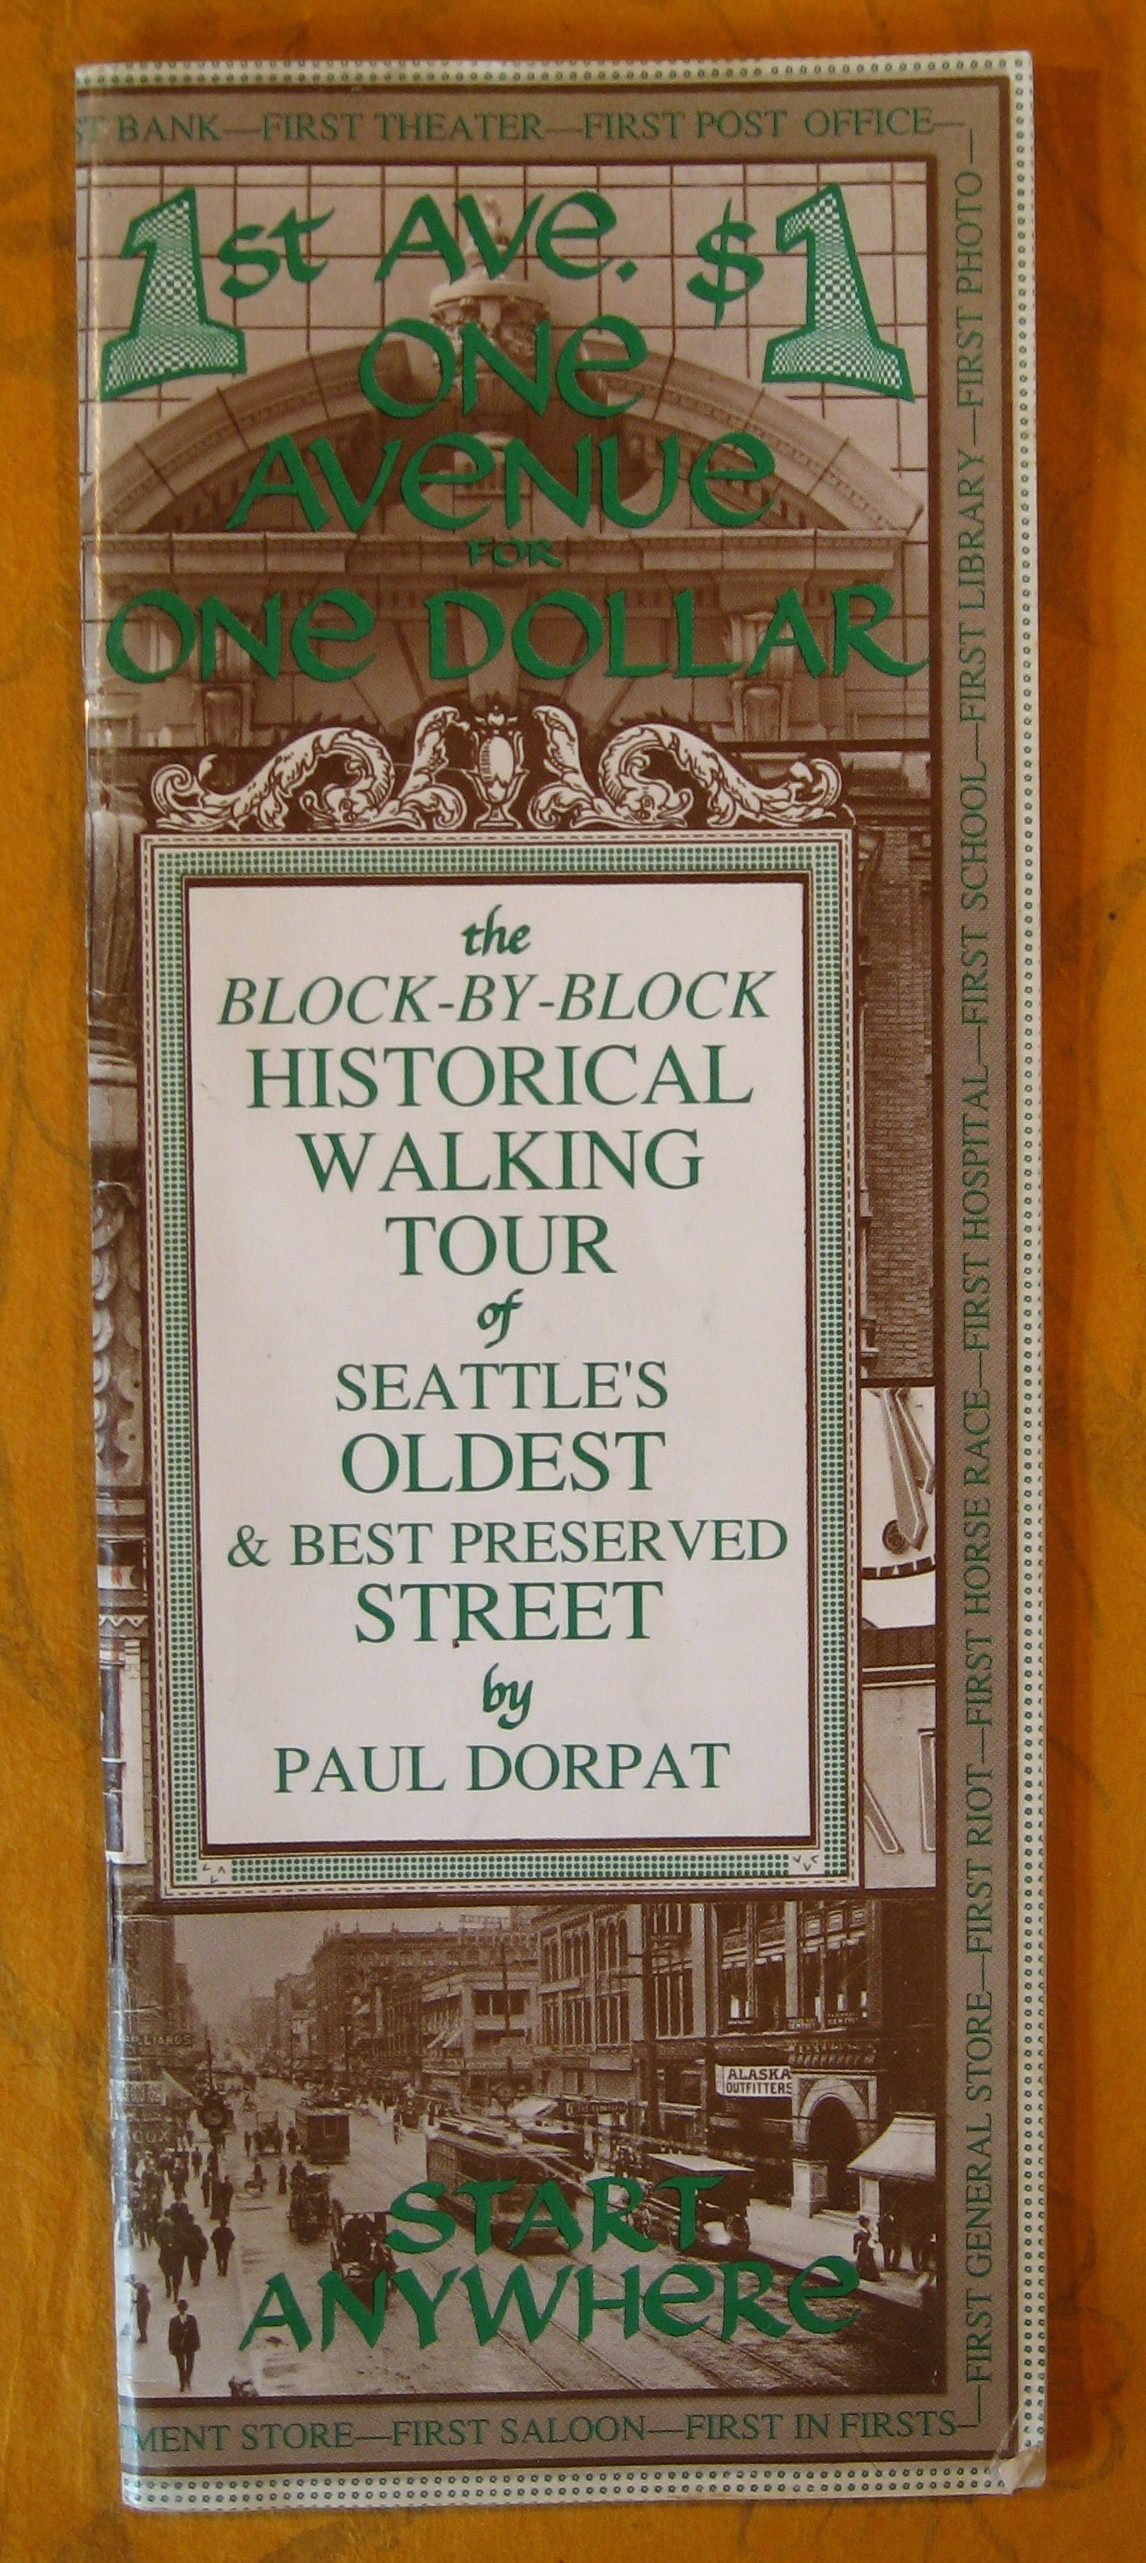 Image for 1st Ave. One Avenue for One Dollar:  The Block-by-block Historical Walking Tour of Seattle's Oldest & Best Preserved Street